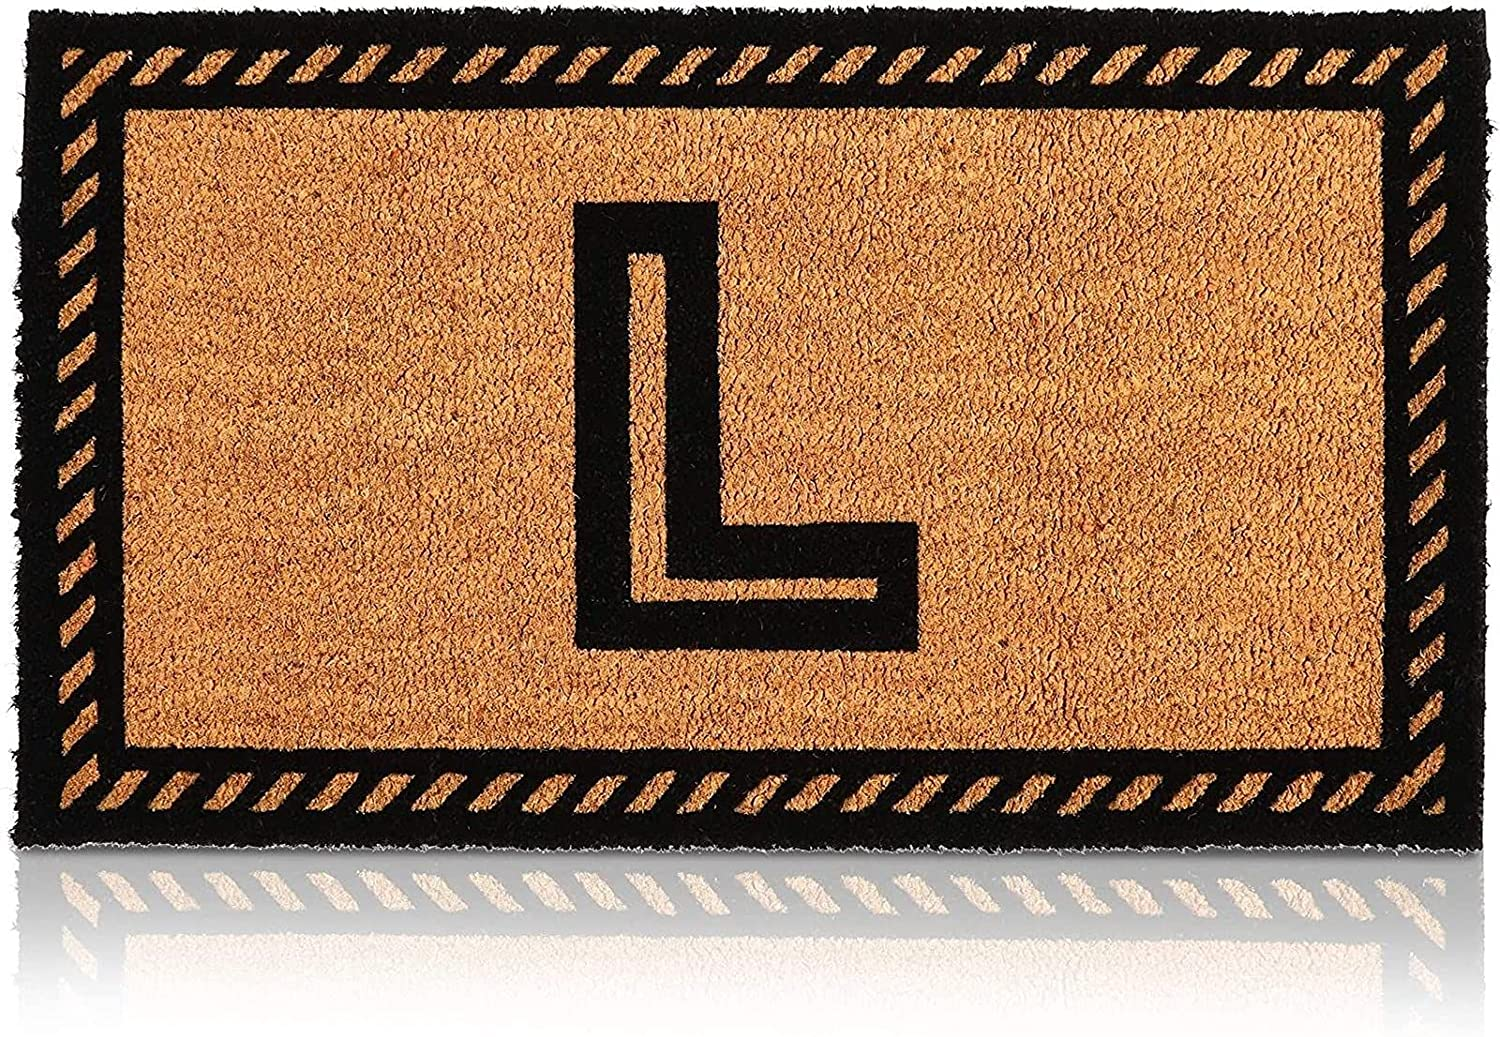 Coco Coir Initial 55% OFF Letter L Monogram in Doormat 2021 spring and summer new x 30 17